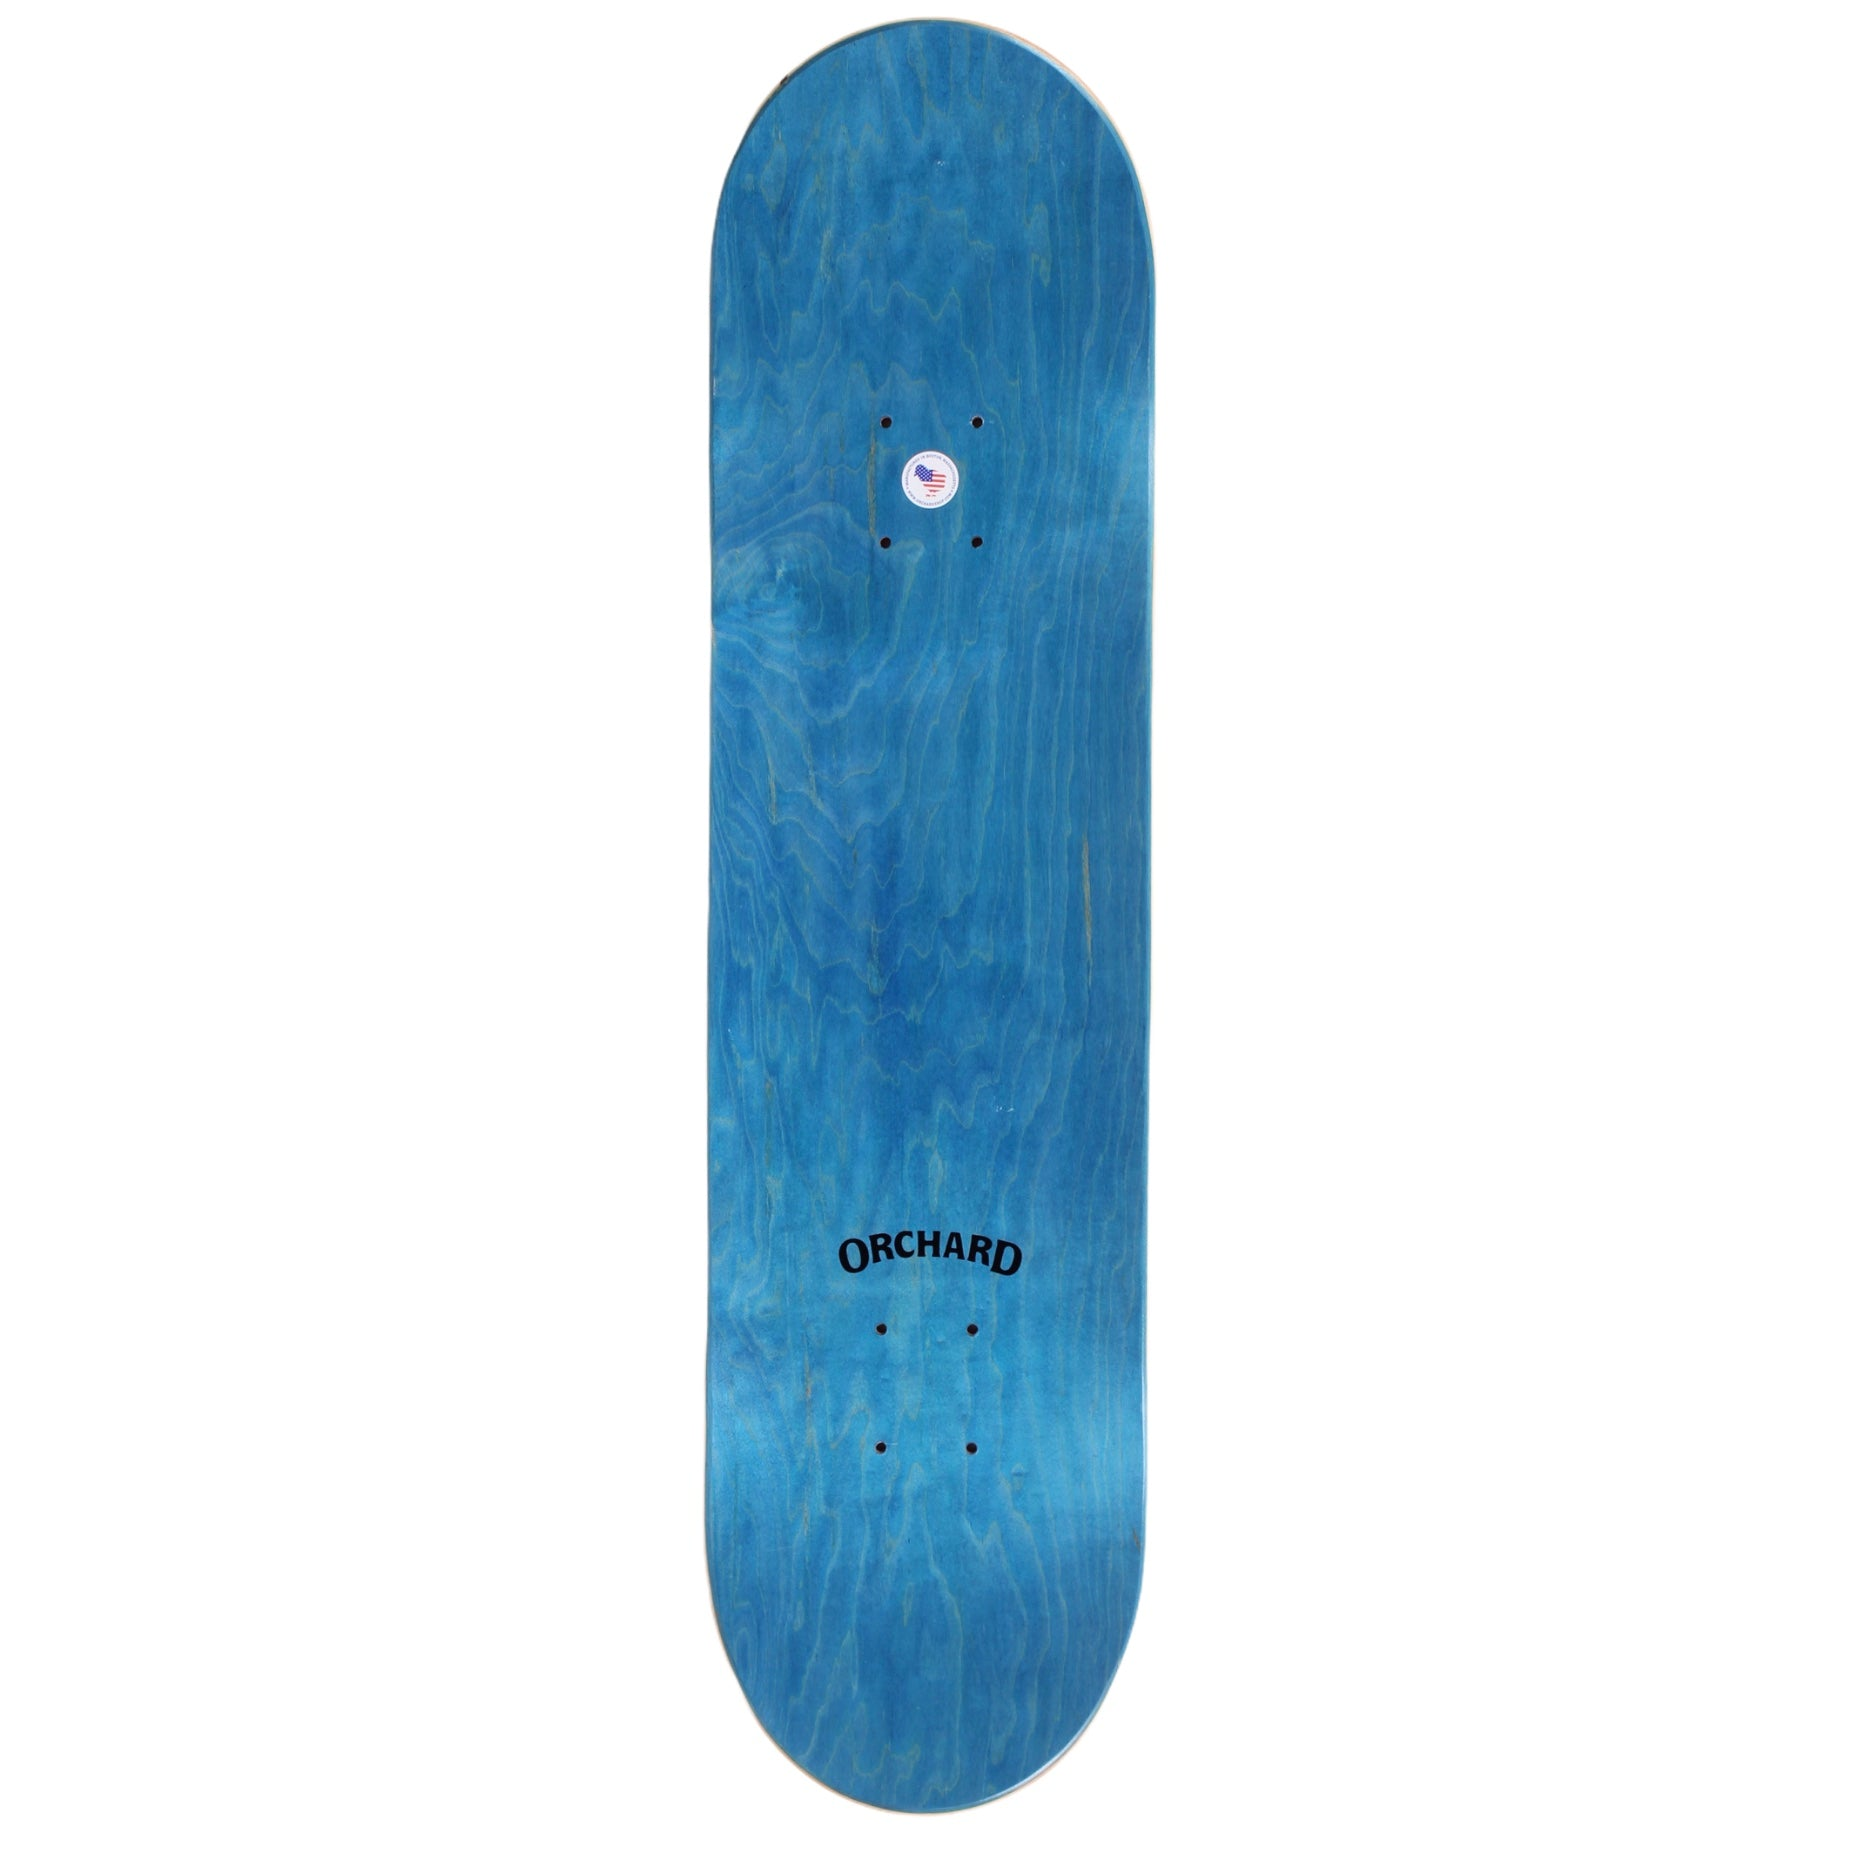 "Orchard Bird Logo Deck Green/White 8.0"" M1"